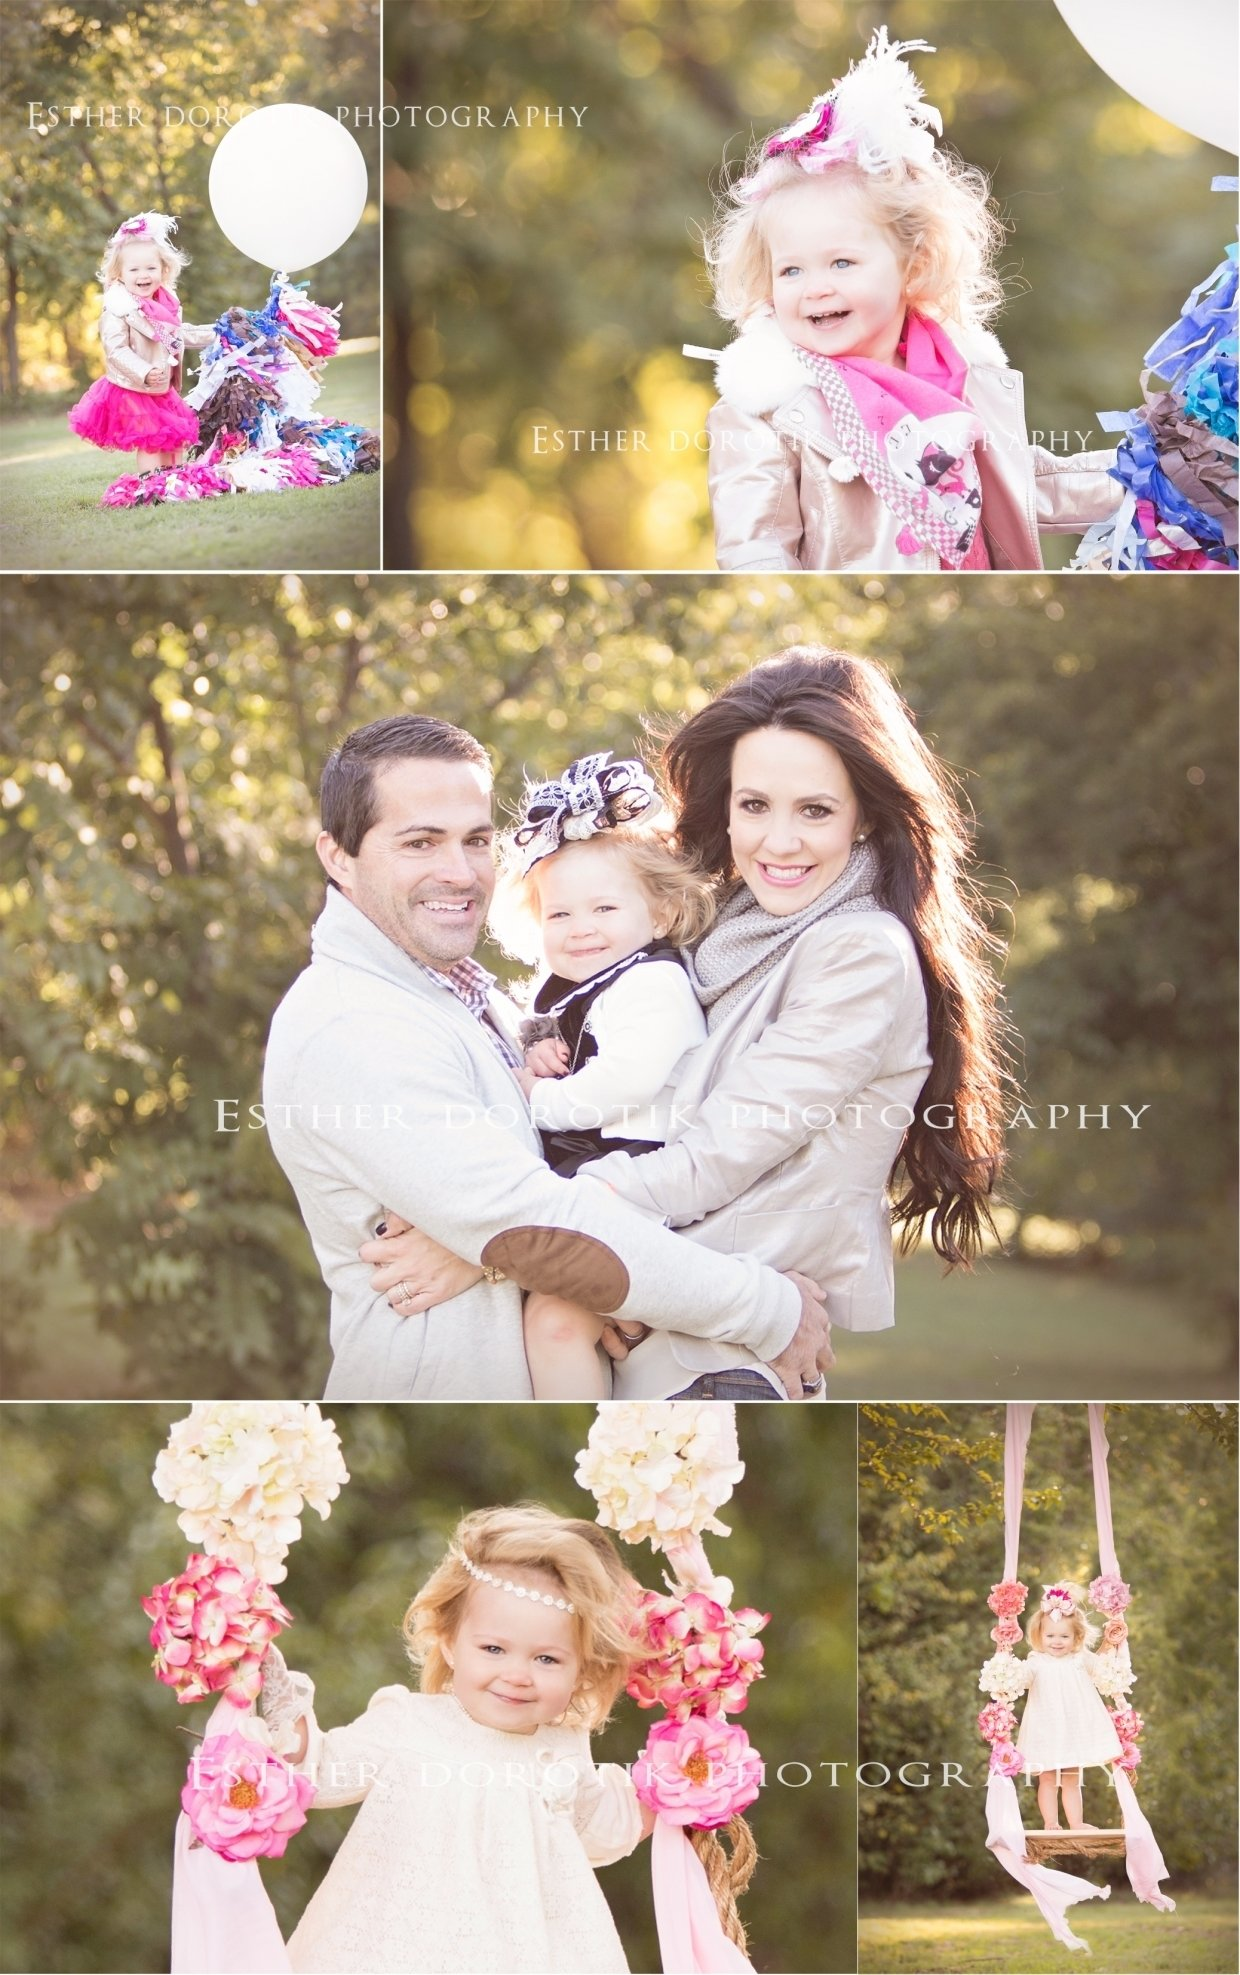 10 Trendy Family Christmas Photo Ideas With Baby dallas family photographer frisco family photographer fort worth 2020